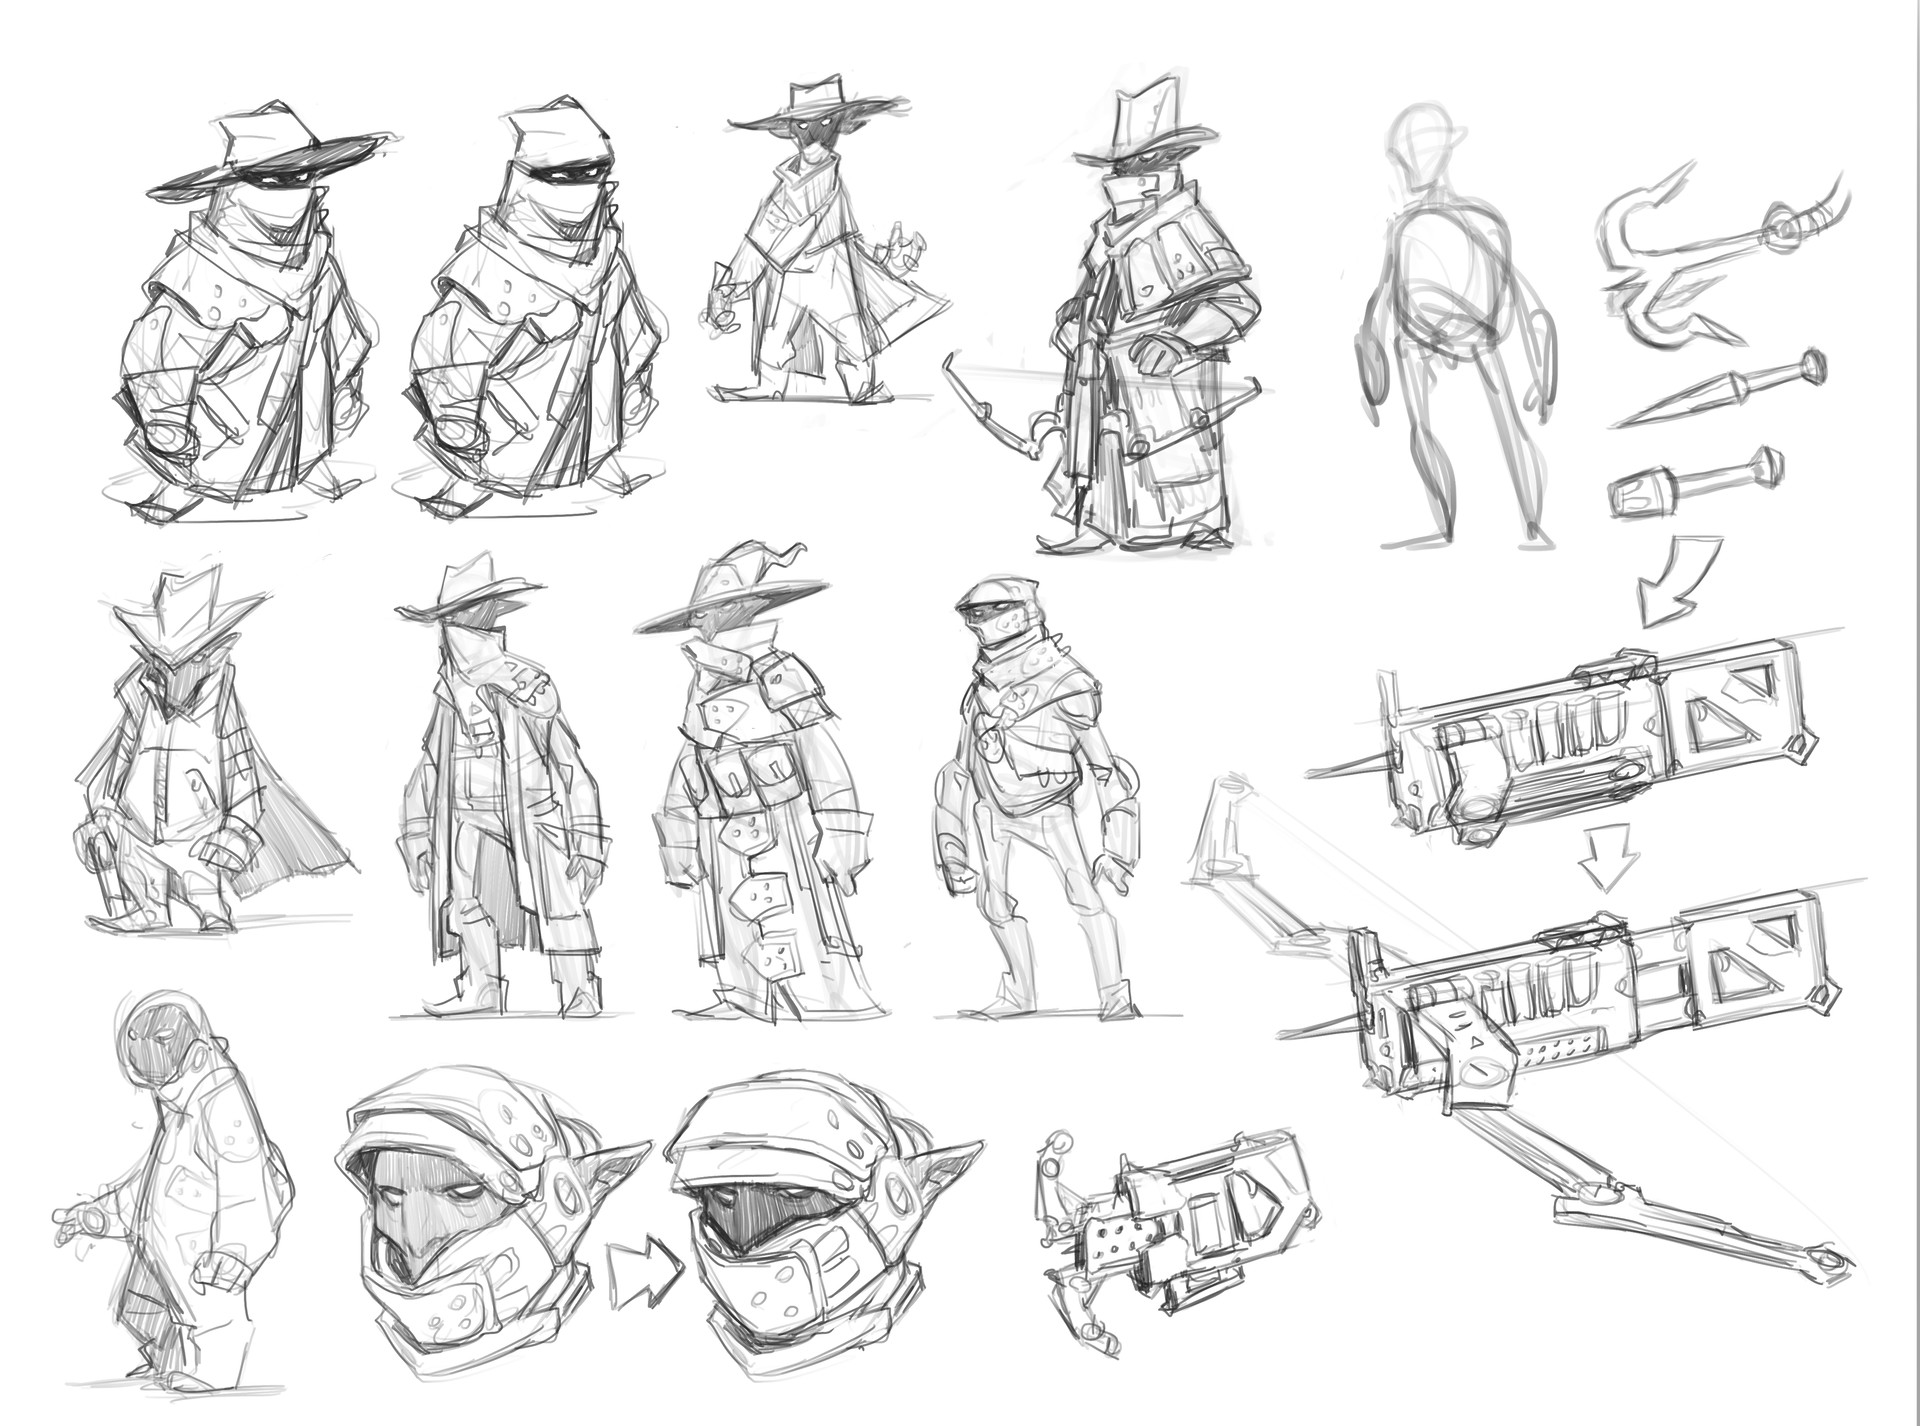 David kegg davidkegg shadows conceptsketches 02